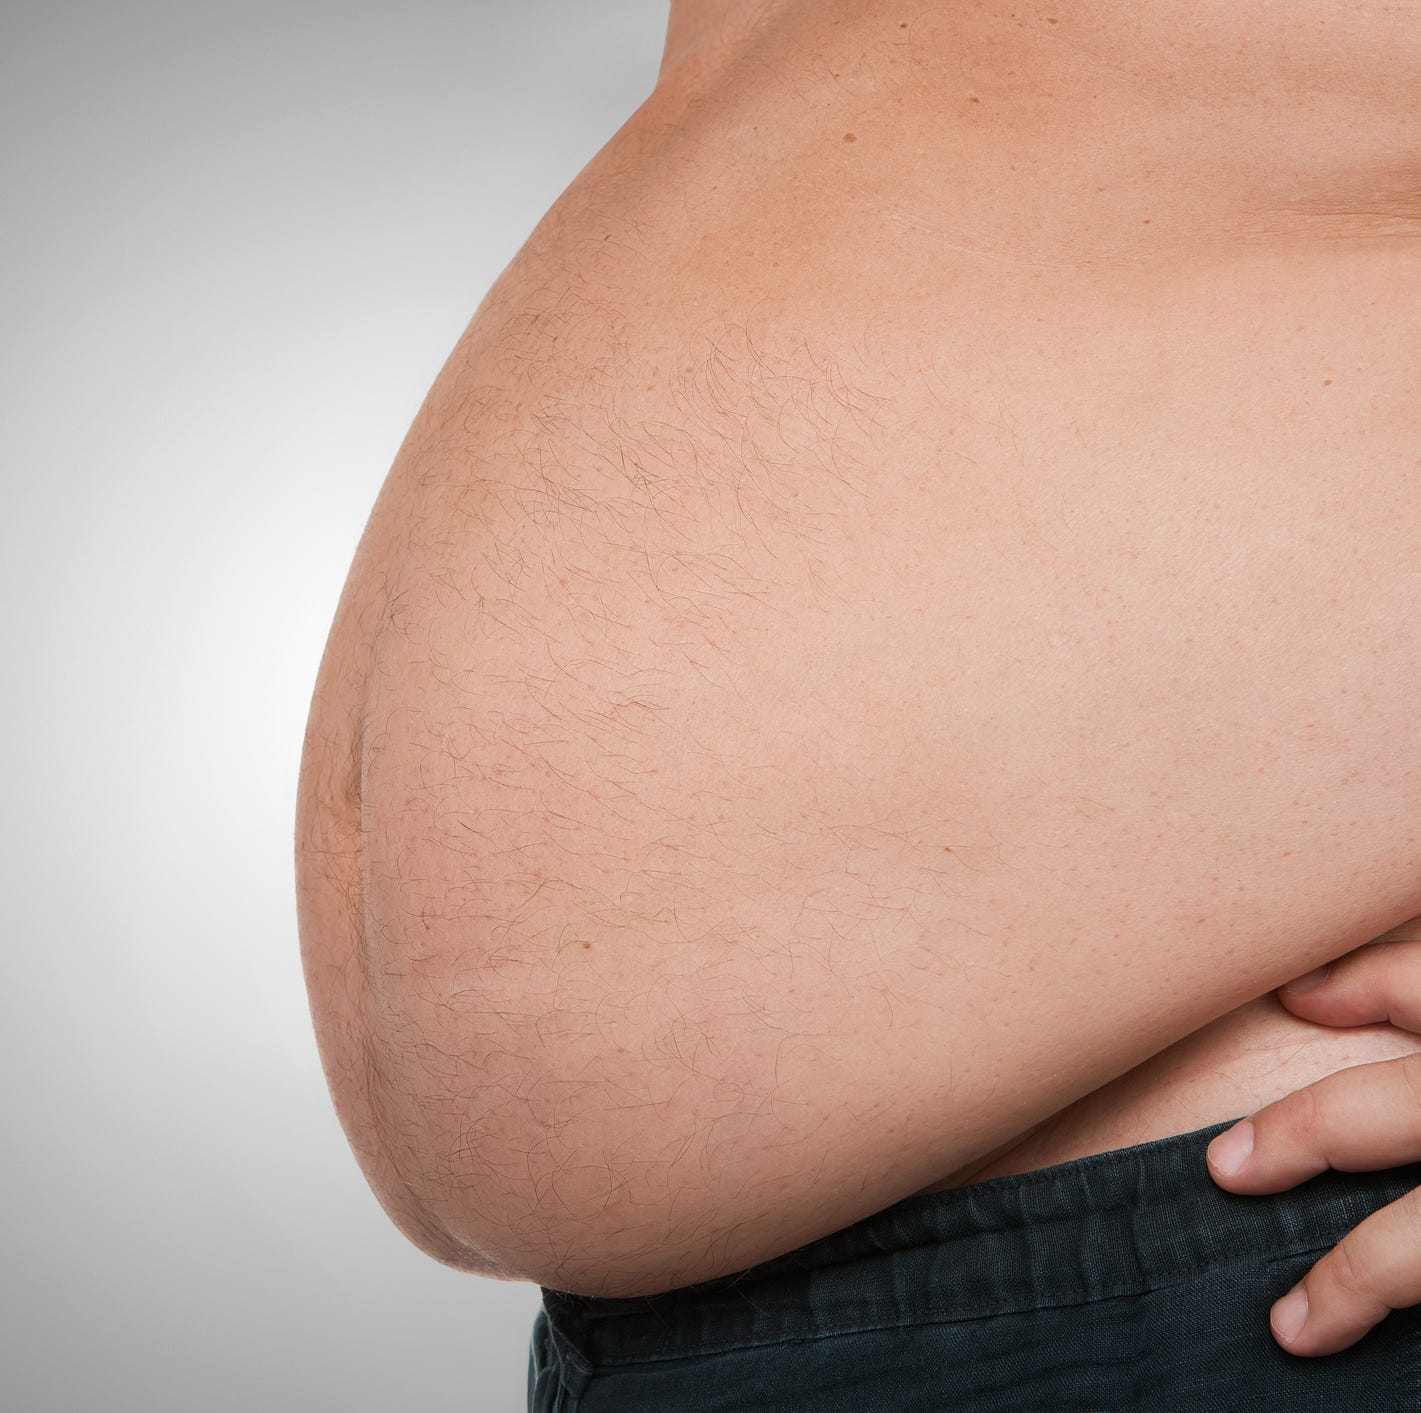 Obesity poised to overtake smoking as leading preventable cause of cancer